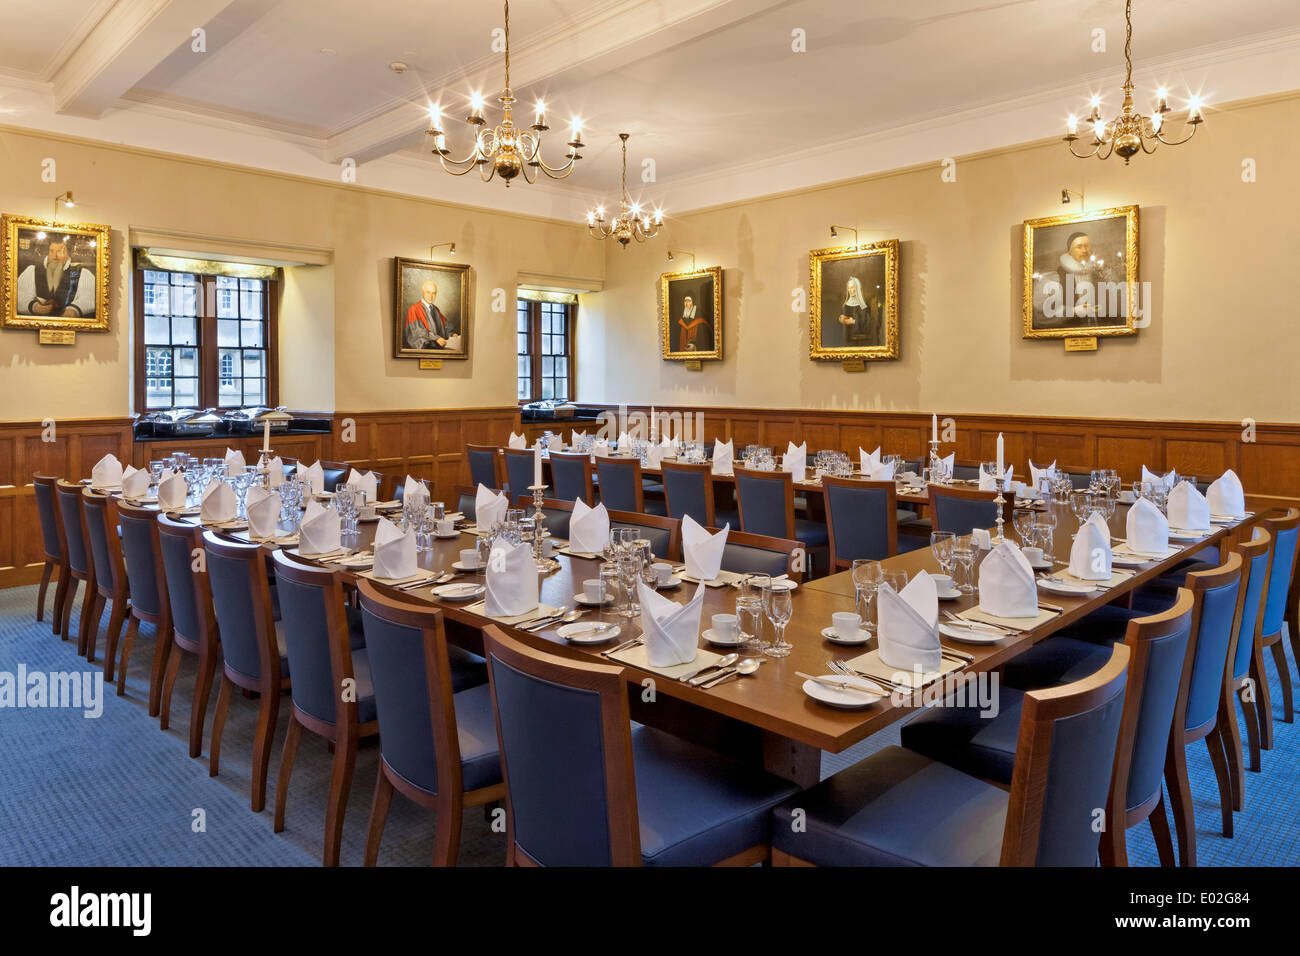 Jesus College Oxford, Oxford, United Kingdom. Architect: N/A, 1571. Small dining room. - Stock Image